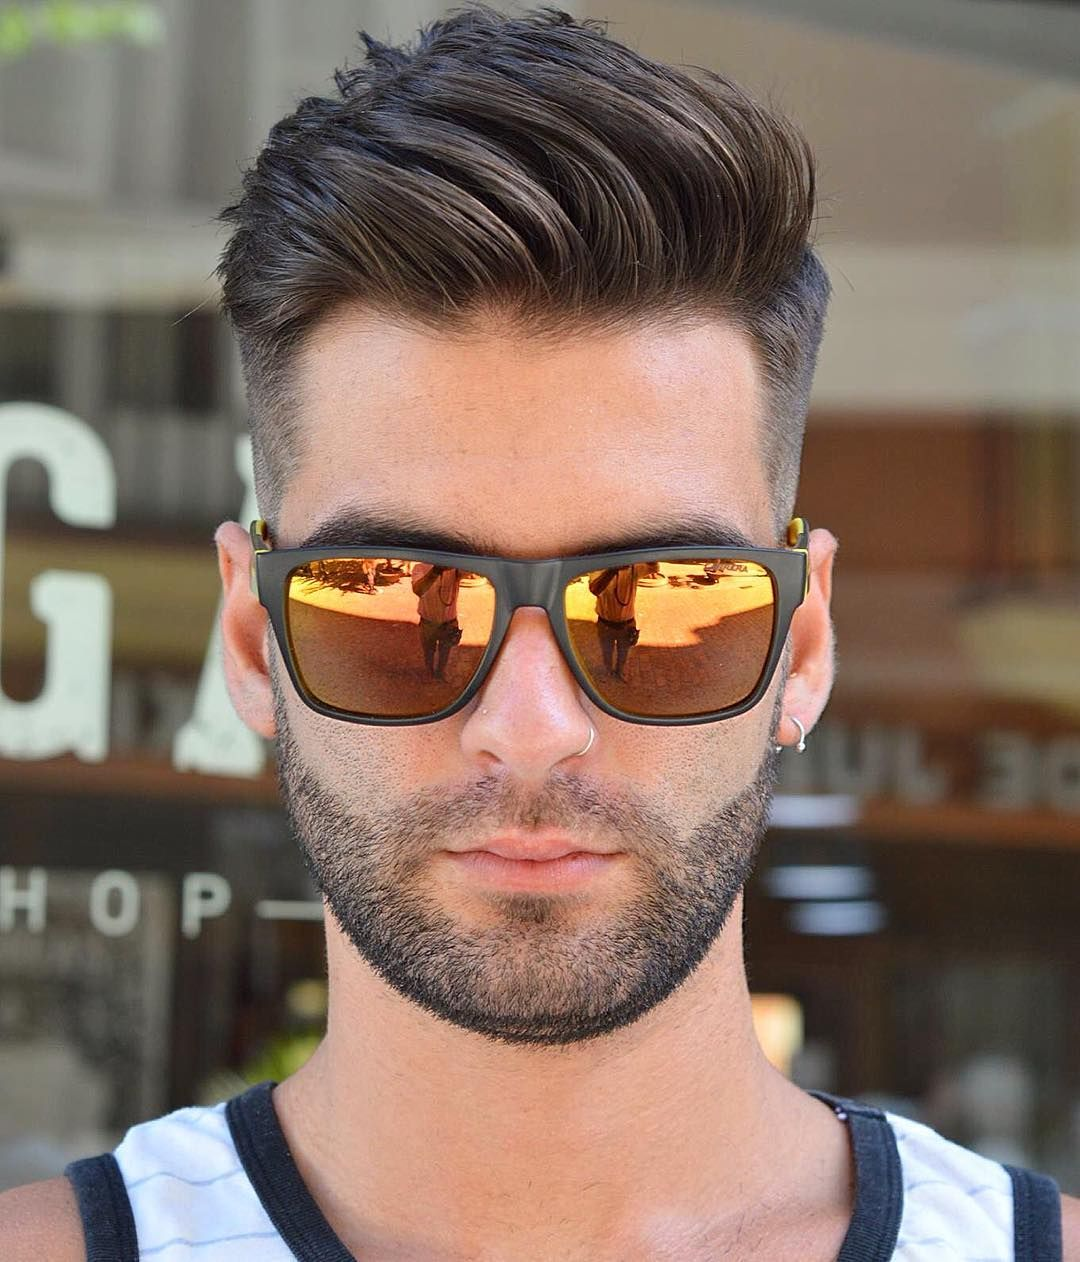 men's hairstyles 2017 | haircuts, hair style and hair cuts